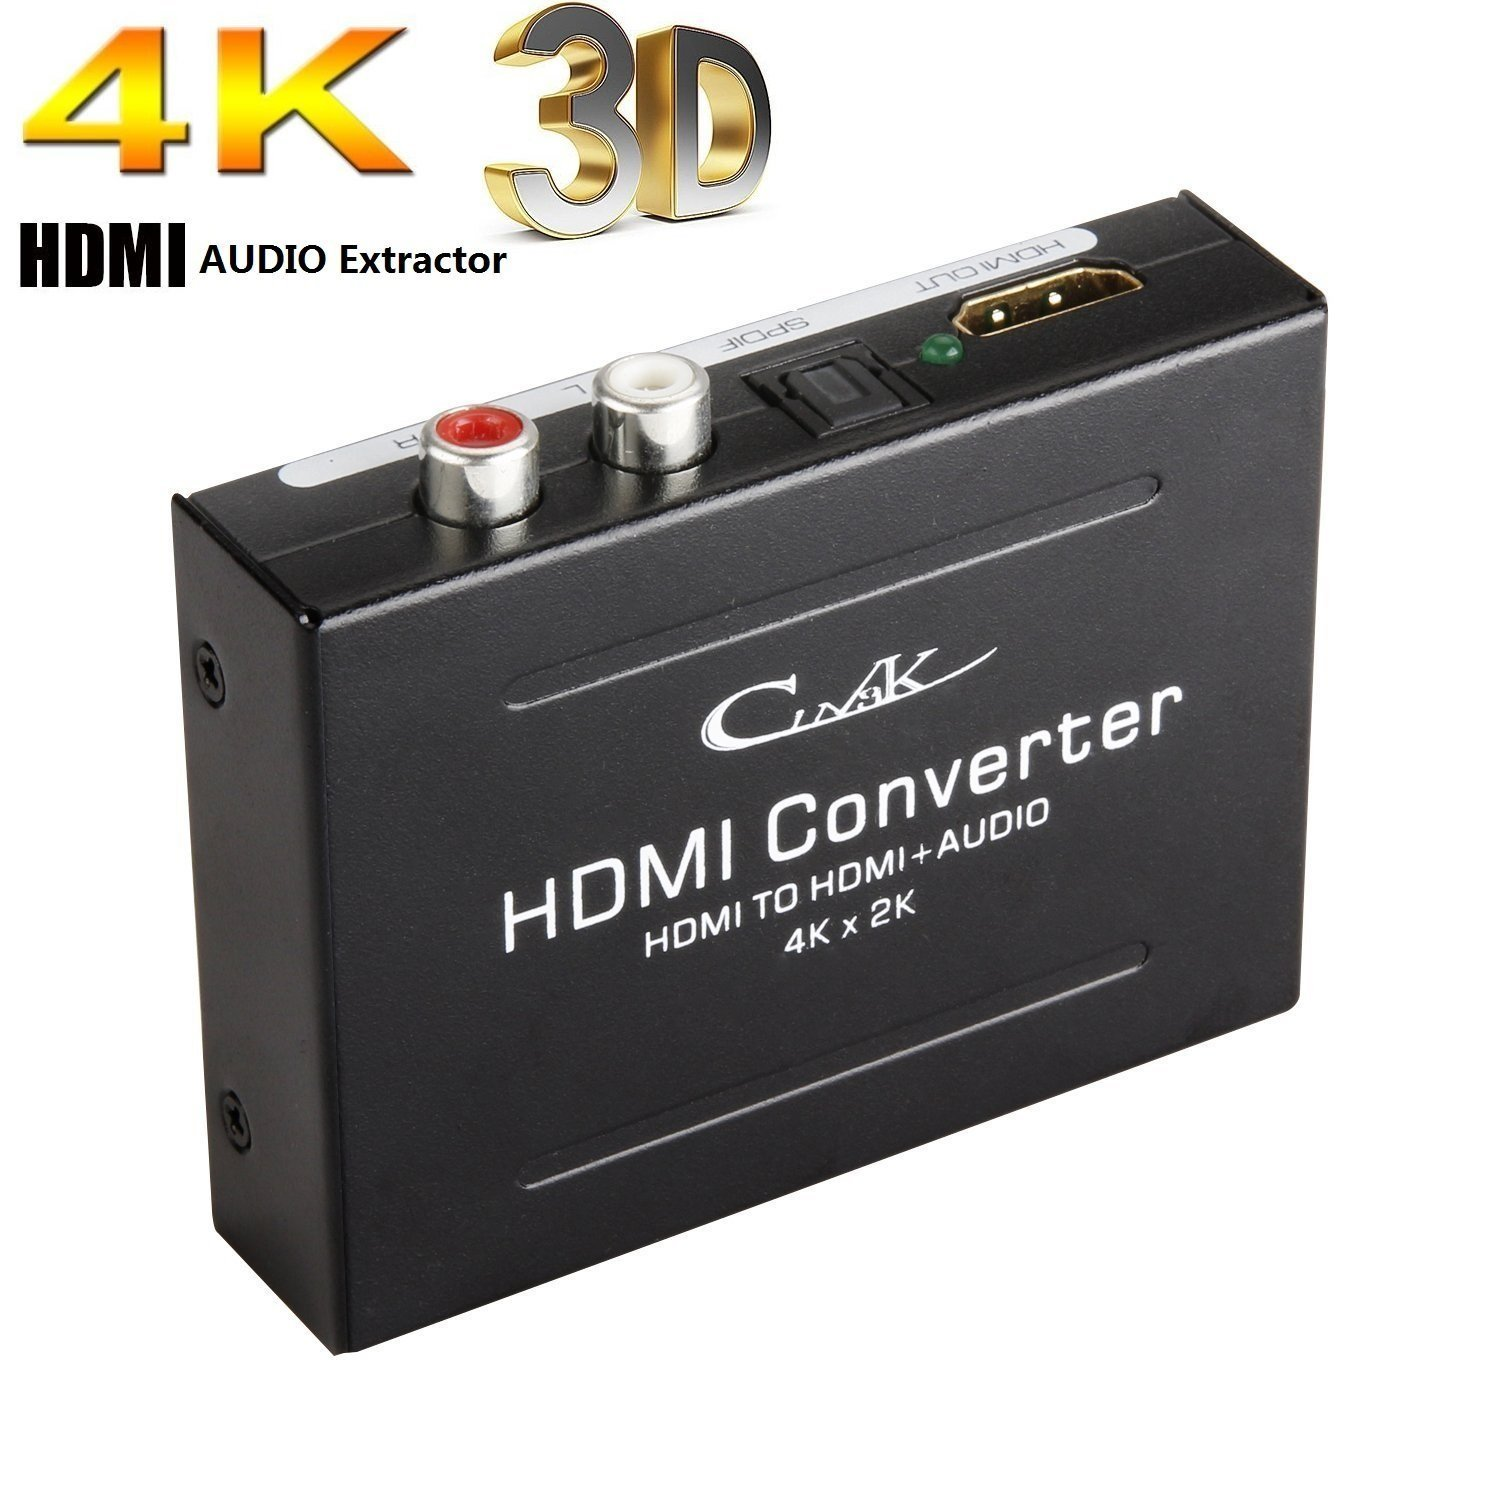 Cingk 4K HDMI Audio Extractor,HDMI To HDMI with Optical Toslink Digital Audio and L R Stereo Analog Audio Output Support HDMI V1.4 4Kx2K Ultra HD 1080P Full HD 3D